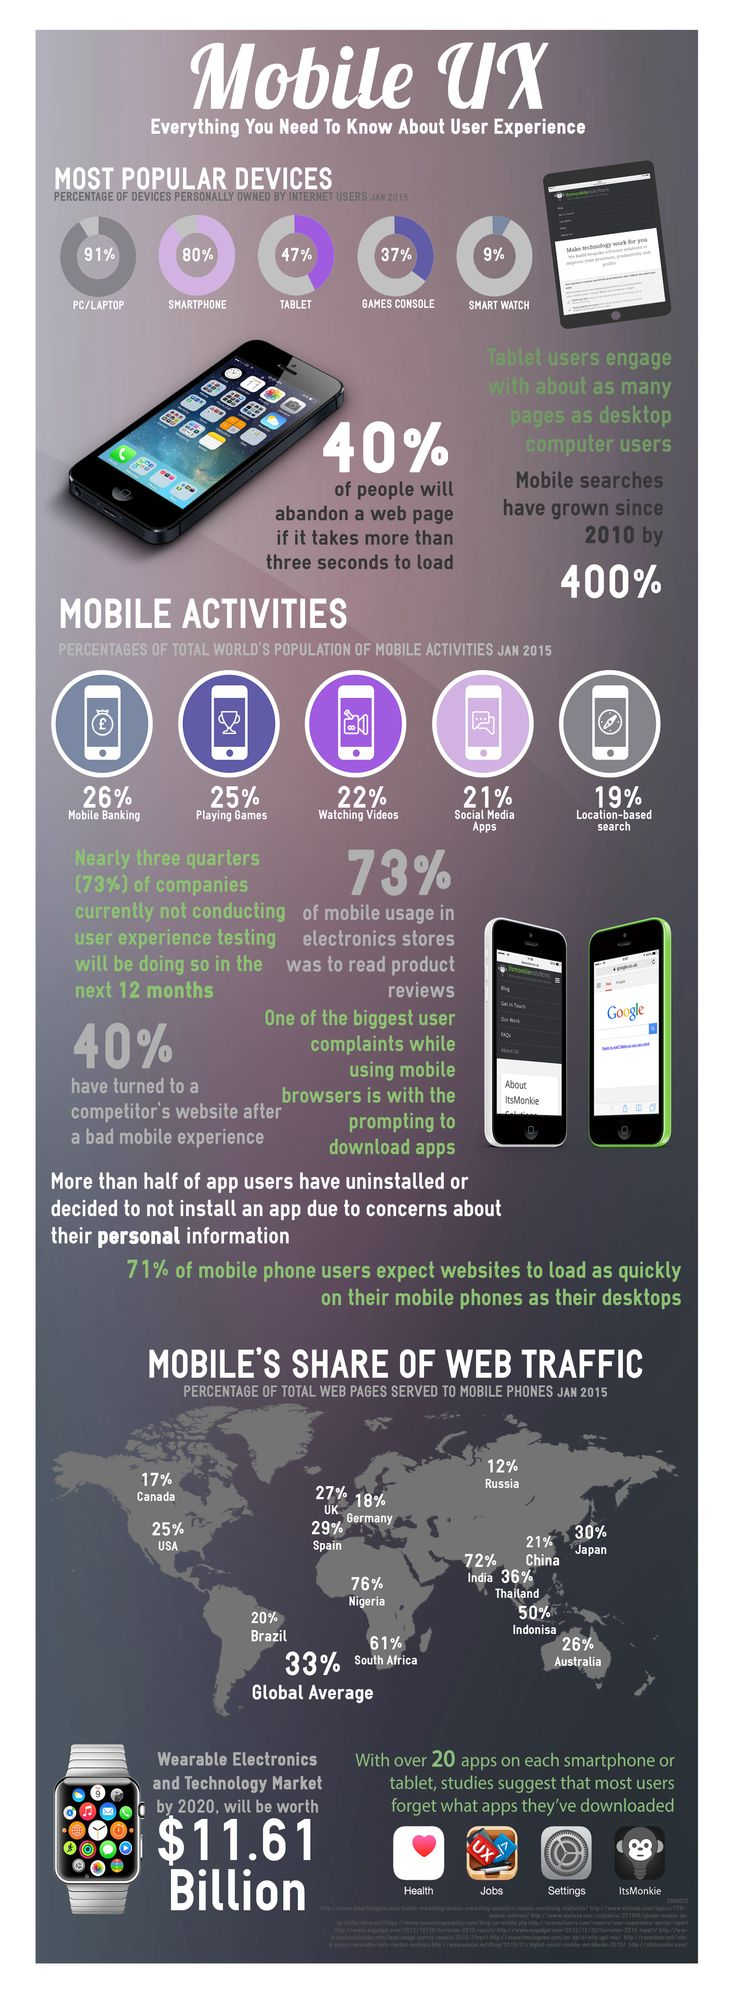 Mobile UX infographic for Its Monkie Solutions made by markITwrite :)